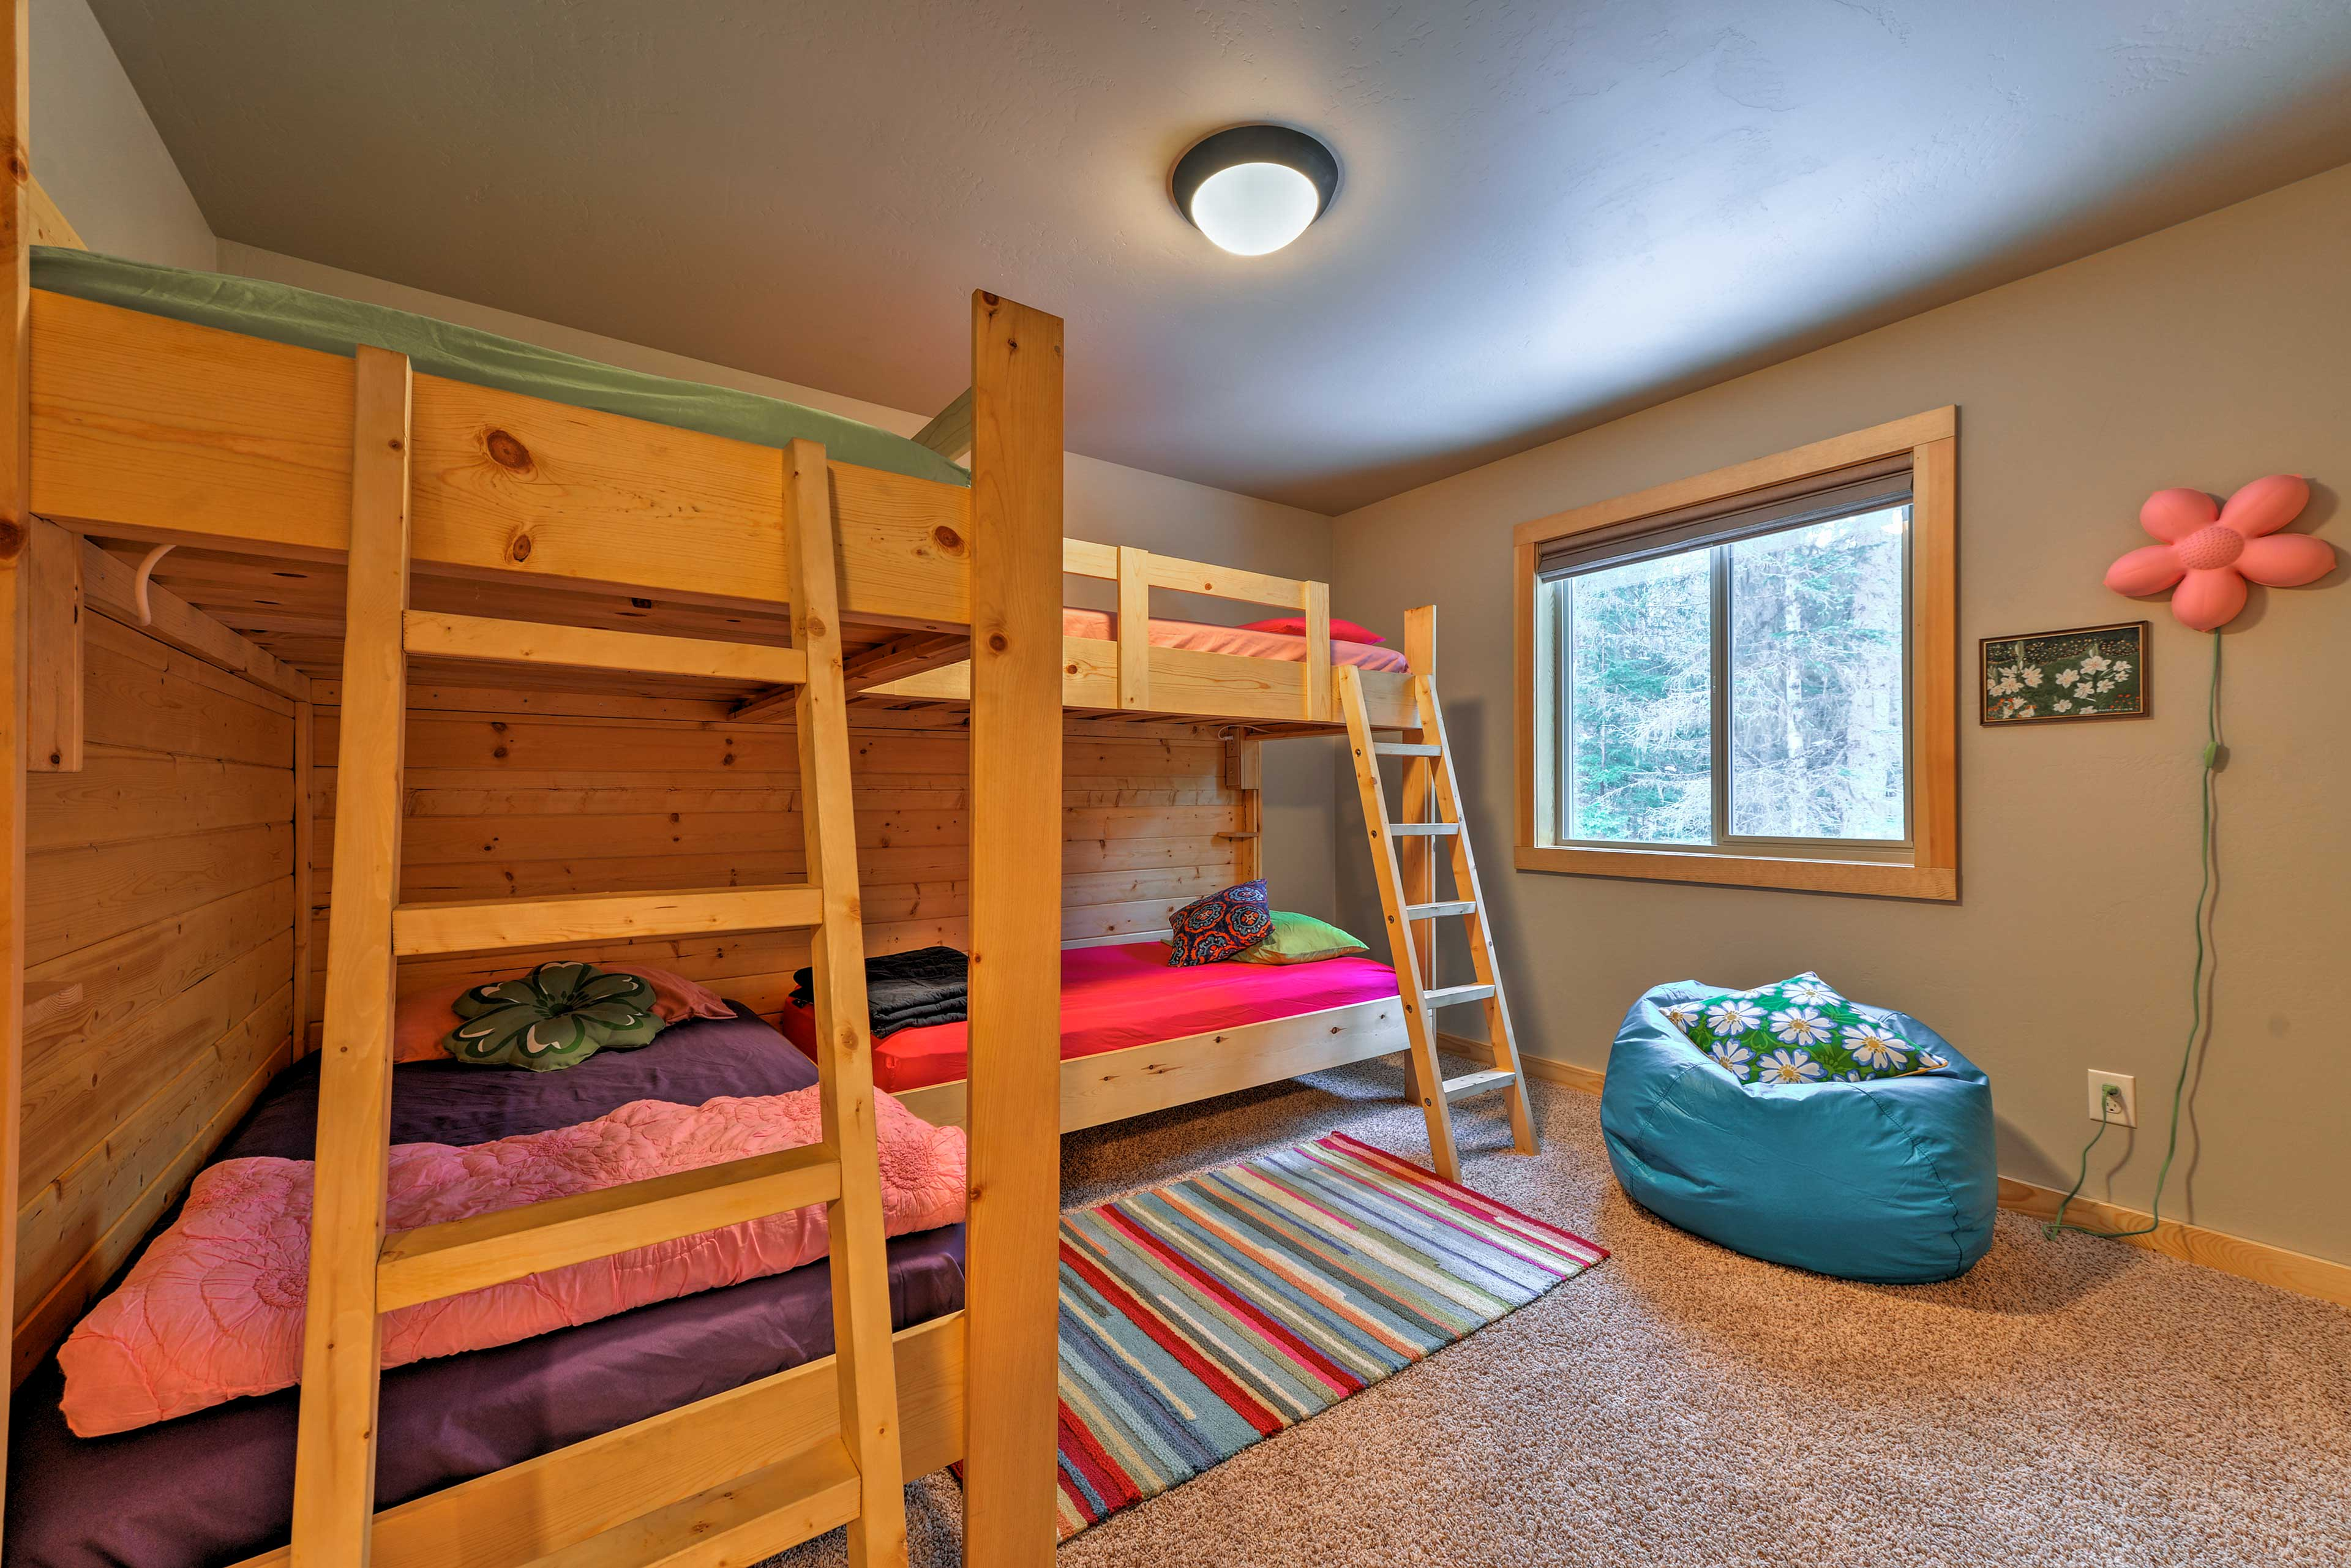 Whoever wins the paddling race gets the top bunks in the kid's room!